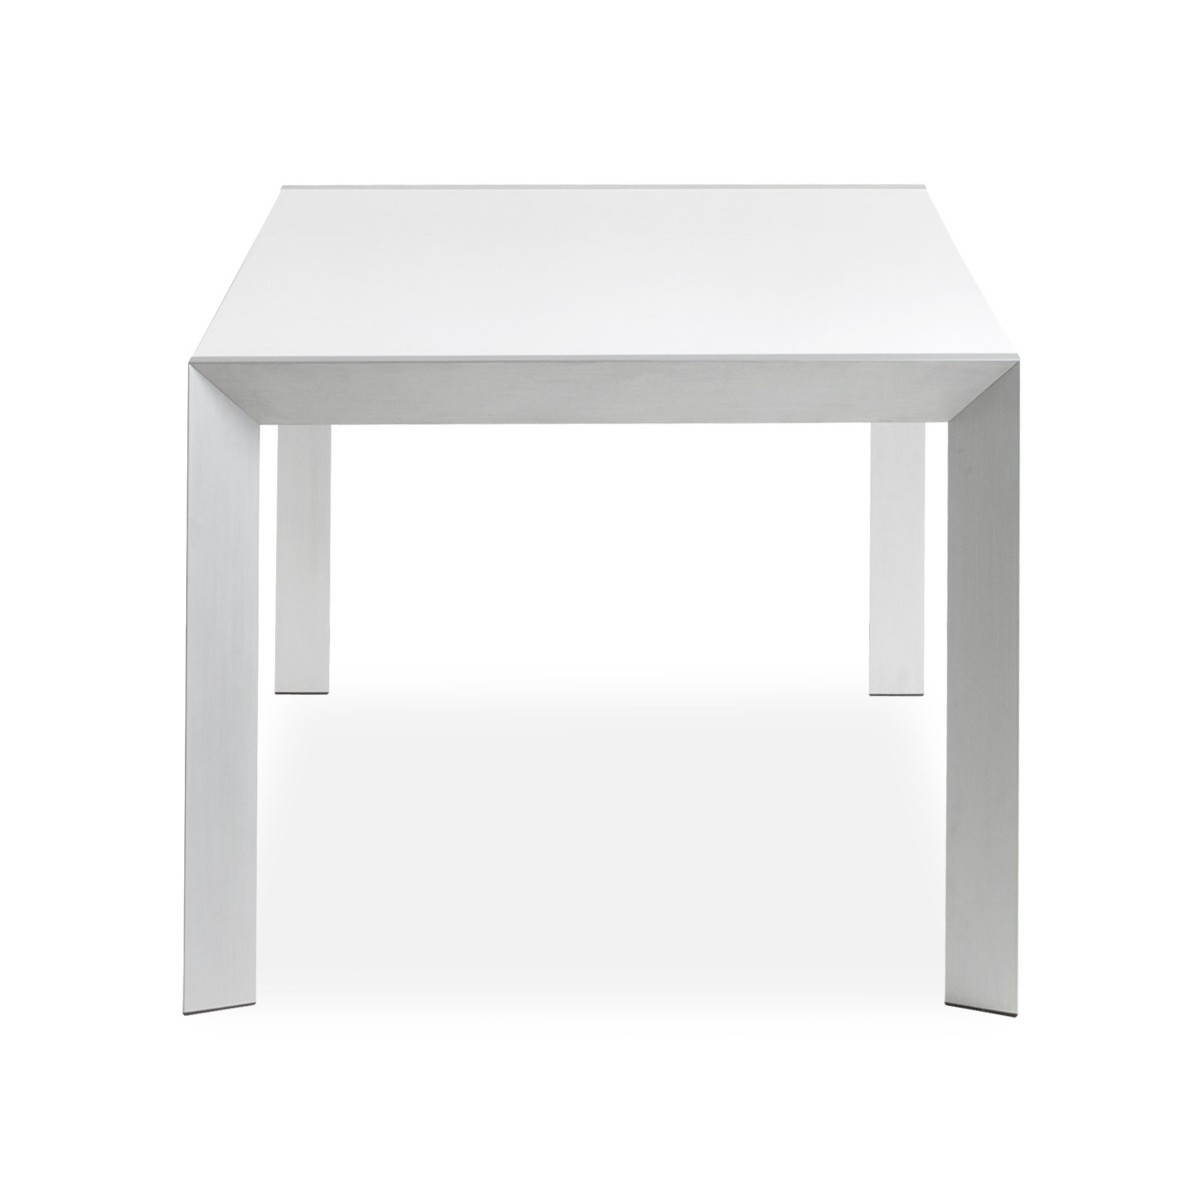 table basse design bois blanc. Black Bedroom Furniture Sets. Home Design Ideas